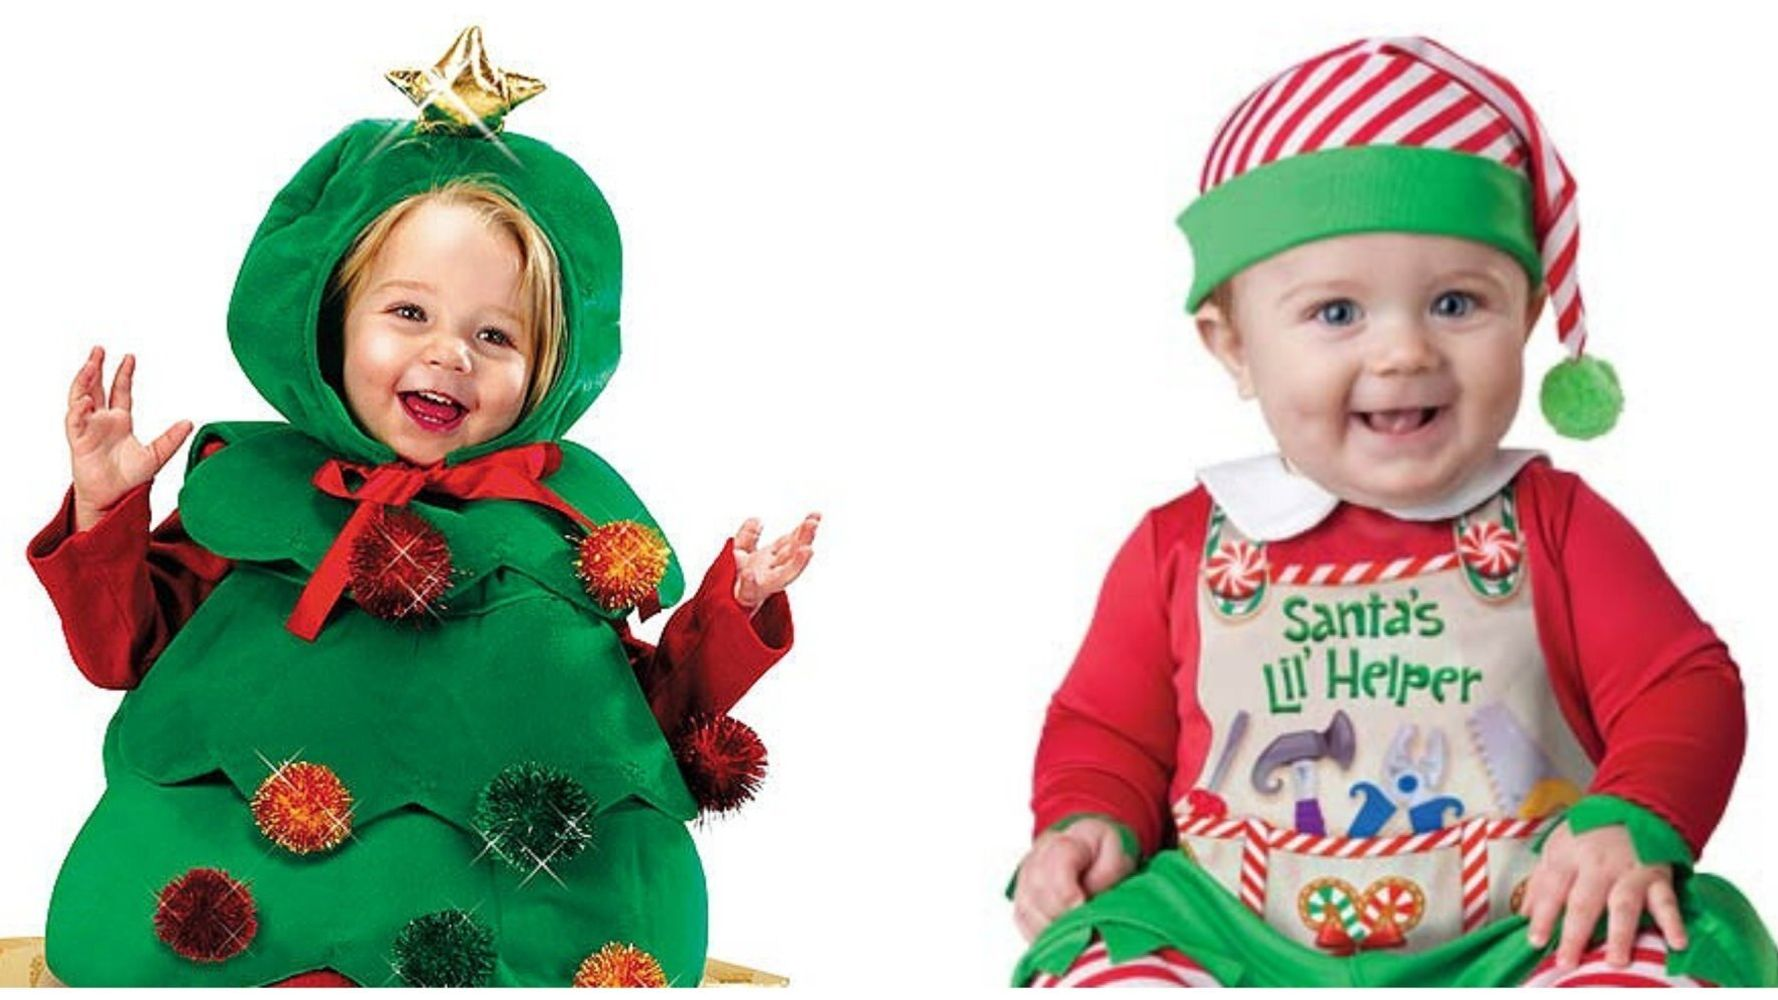 Christmas Pudding Baby Outfit.Best Christmas Outfits For Babies From Christmas Pudding